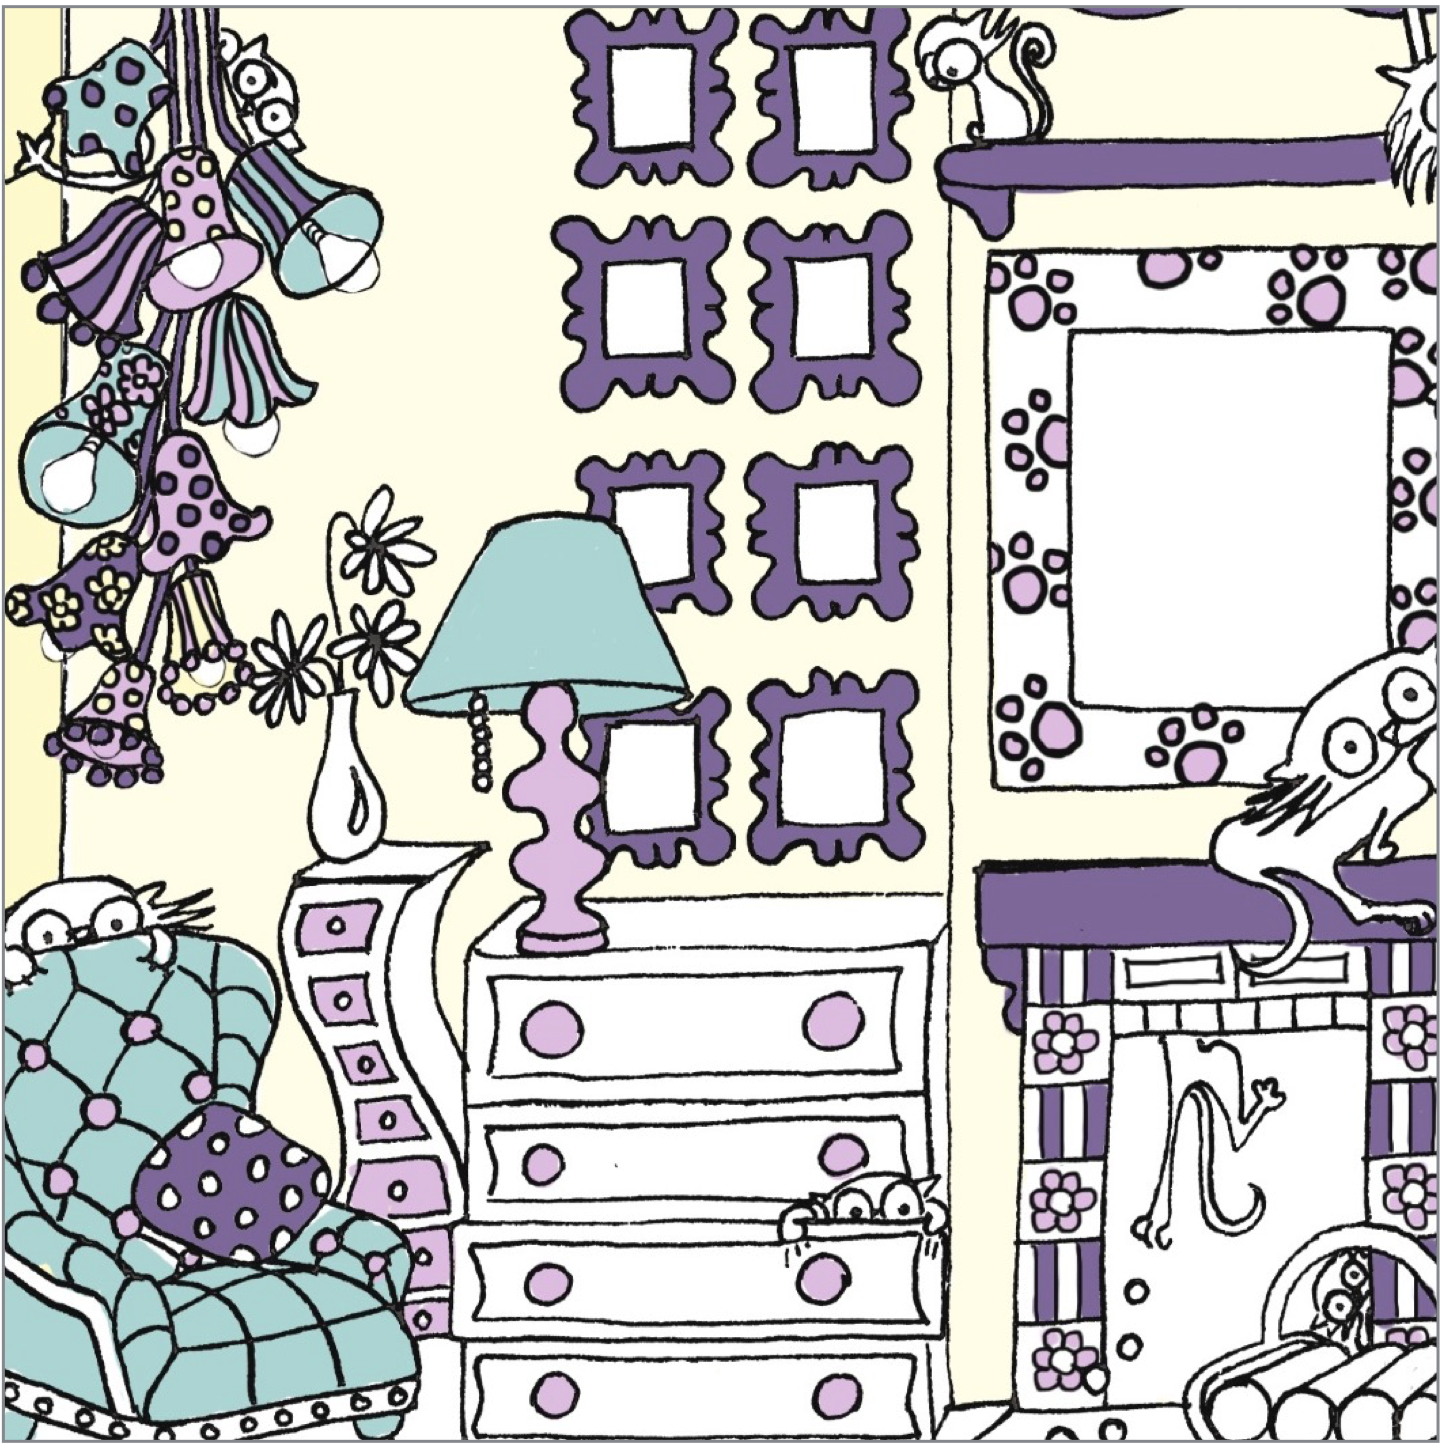 CAT DONT CARE | ADULT COLOURING BOOK BY NATALIE PALMER SUTTON 8.png